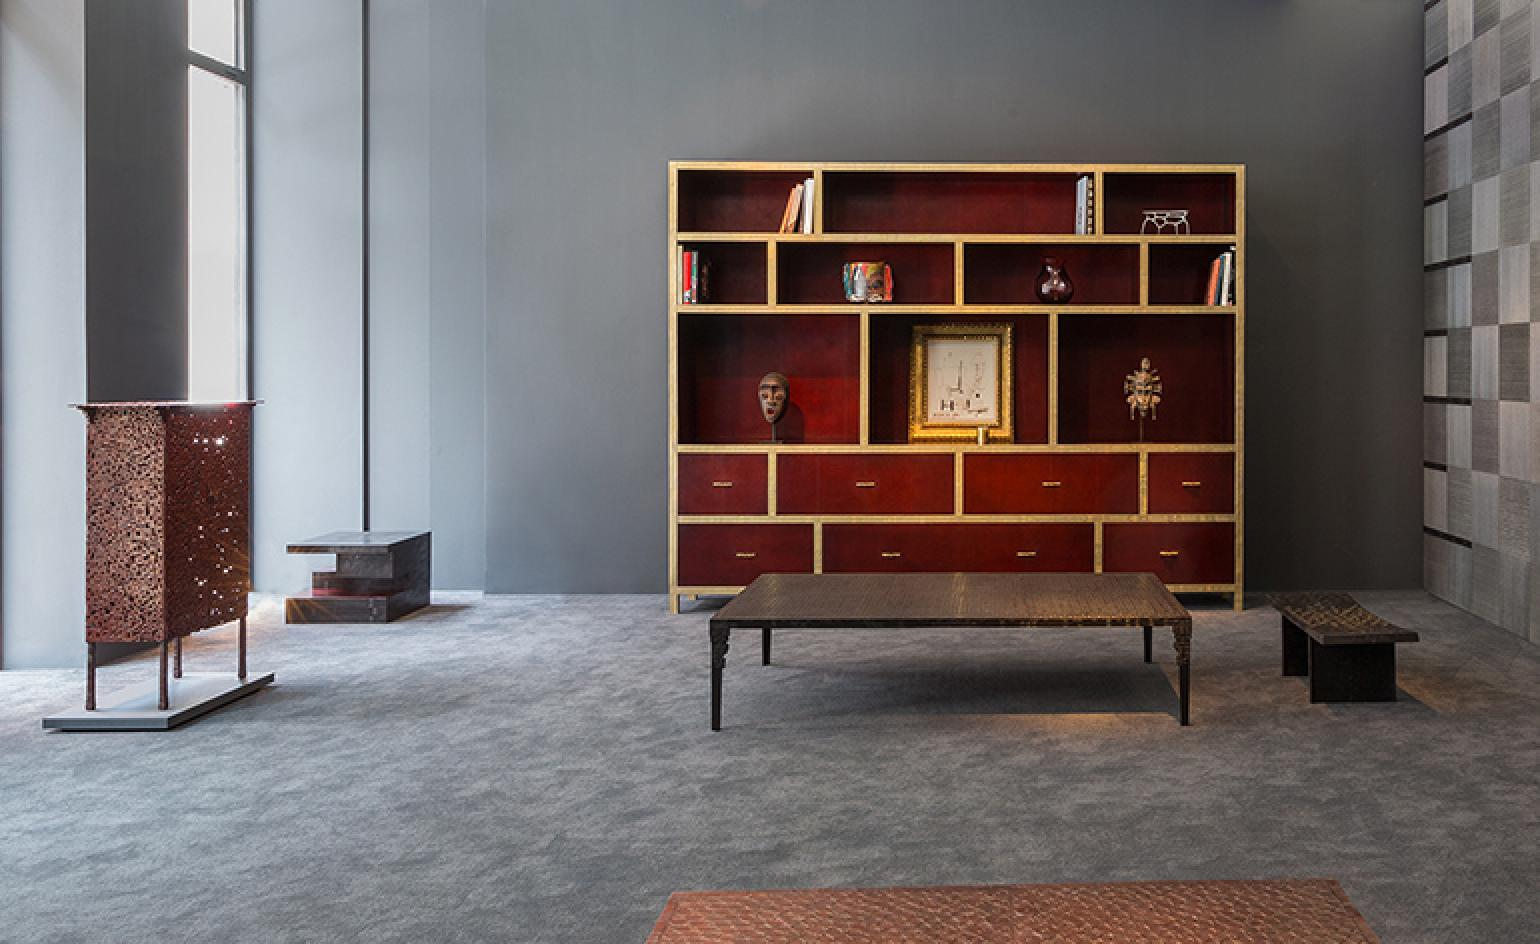 Carpenters Workshop Gallery opens in New York City